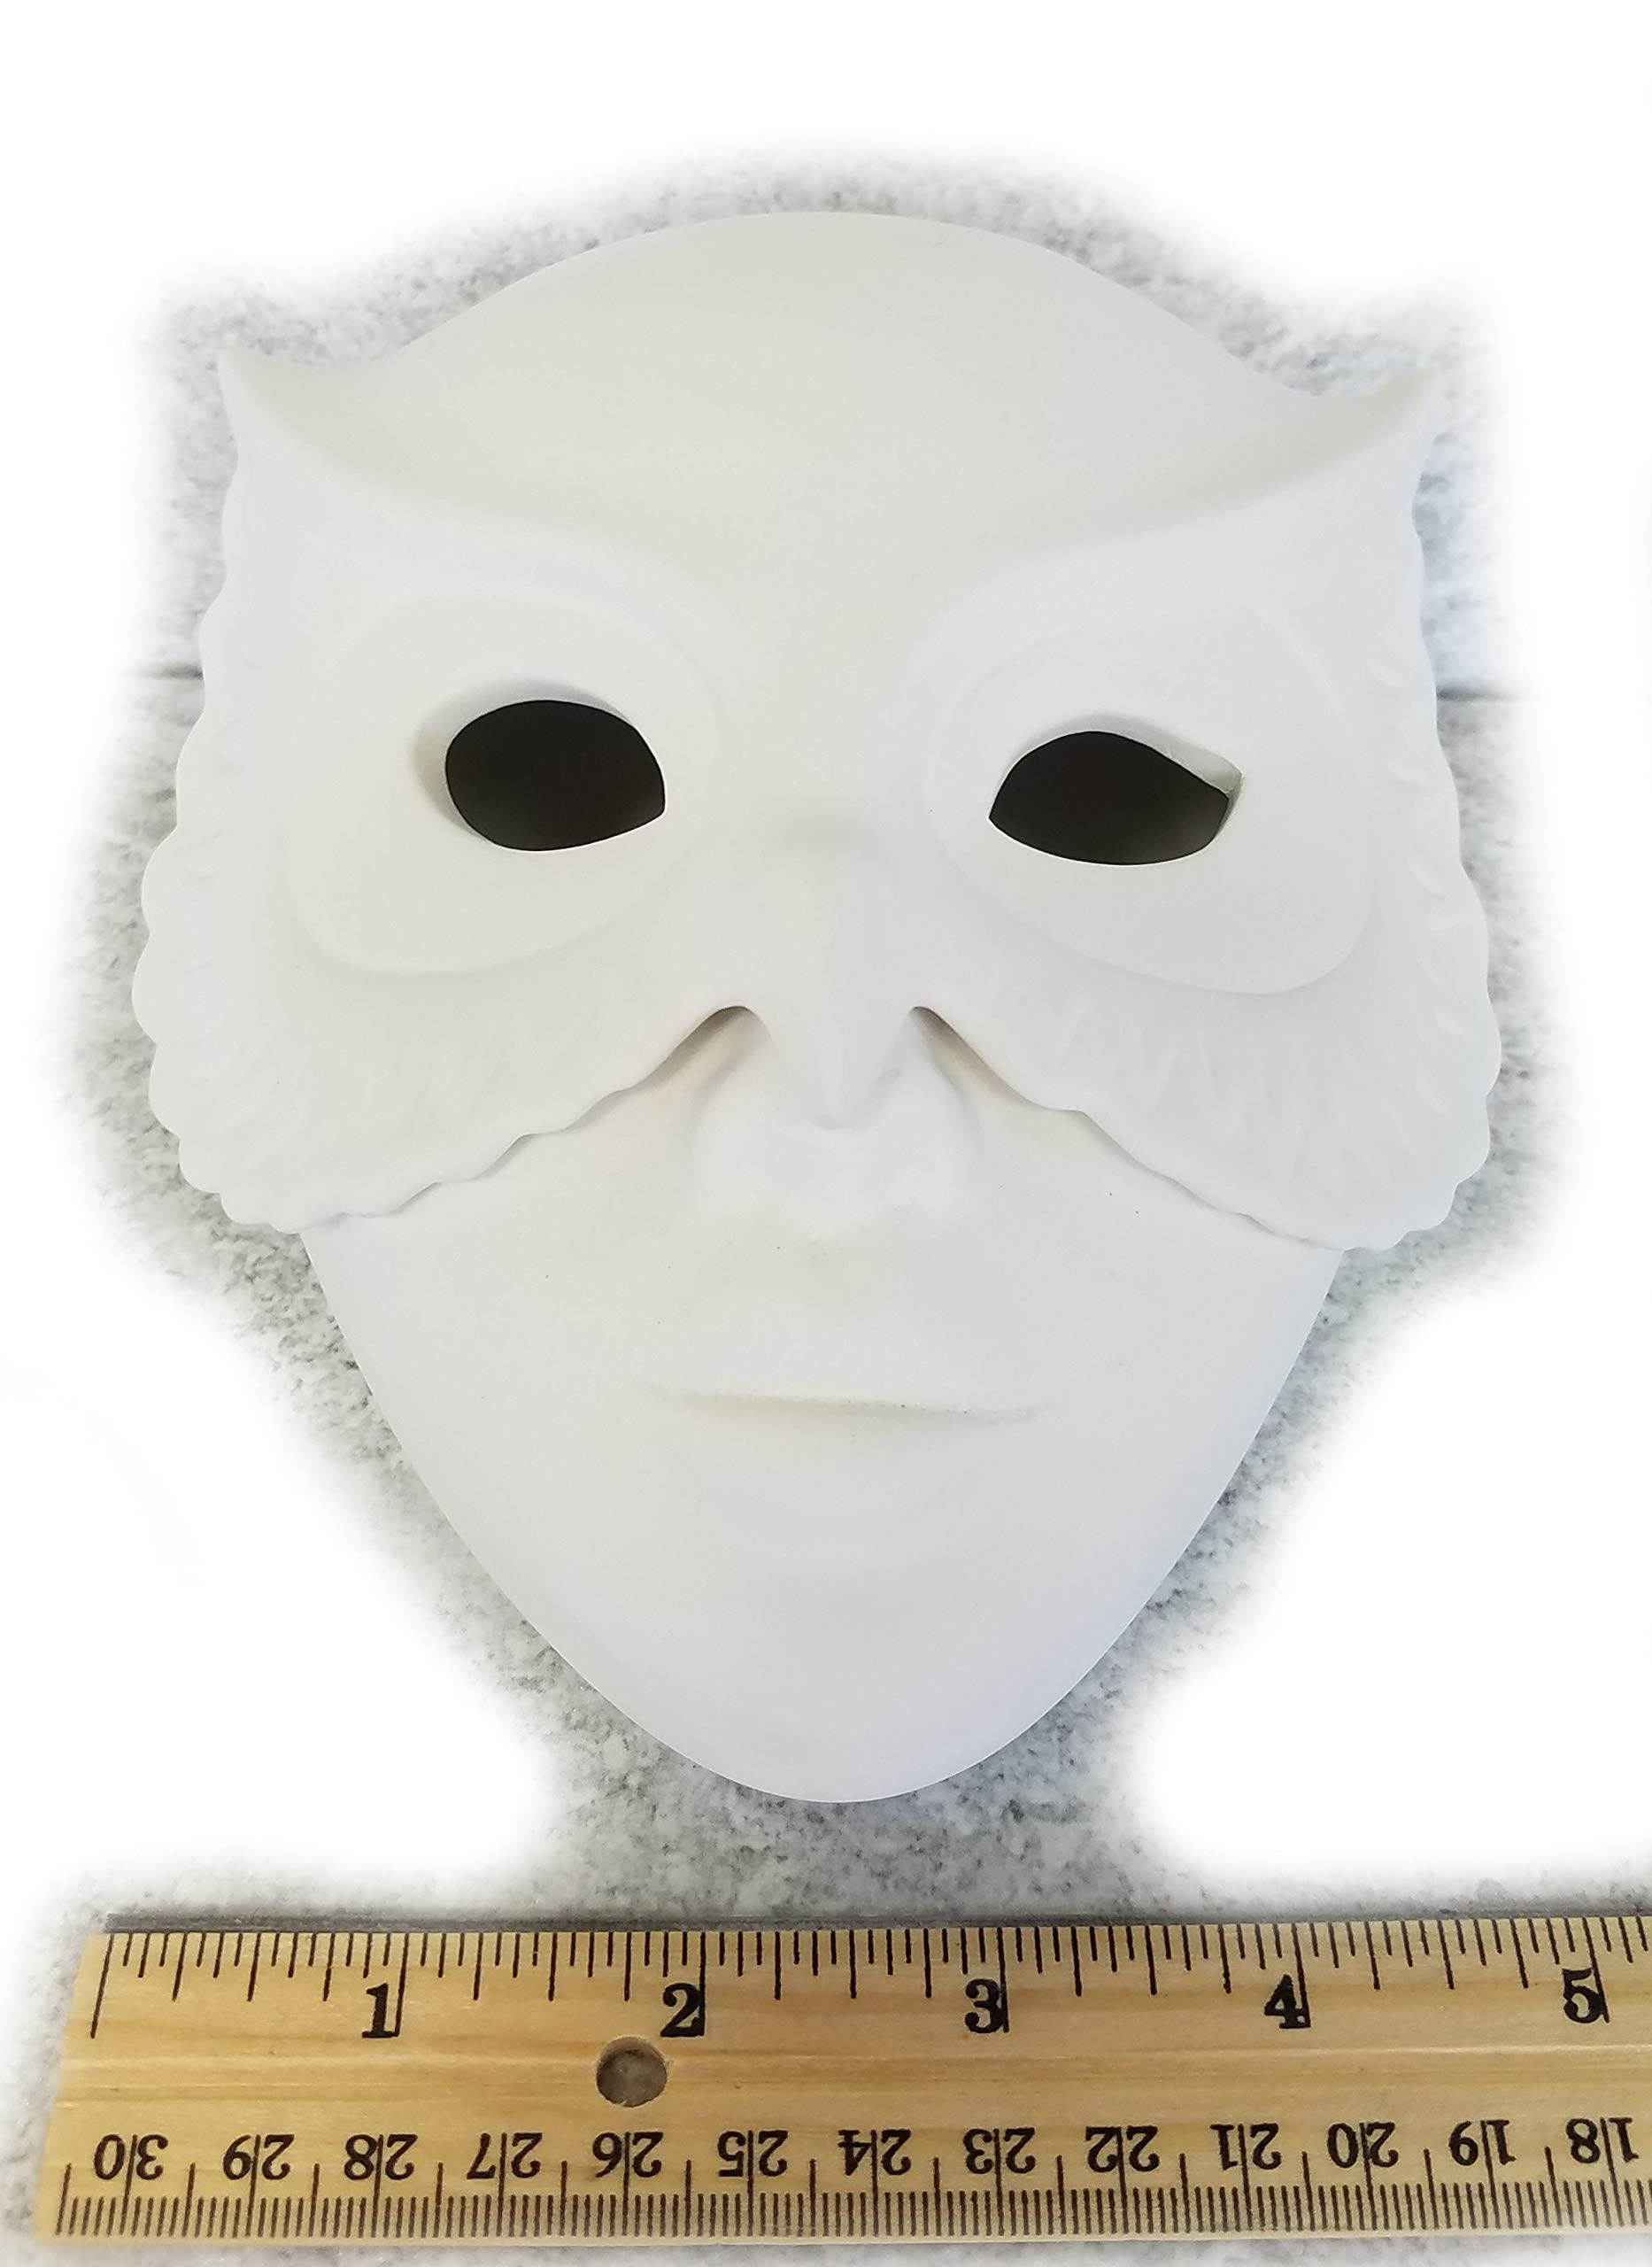 Bisque - Owl Mask Box (Unpainted, Ready for Glaze)